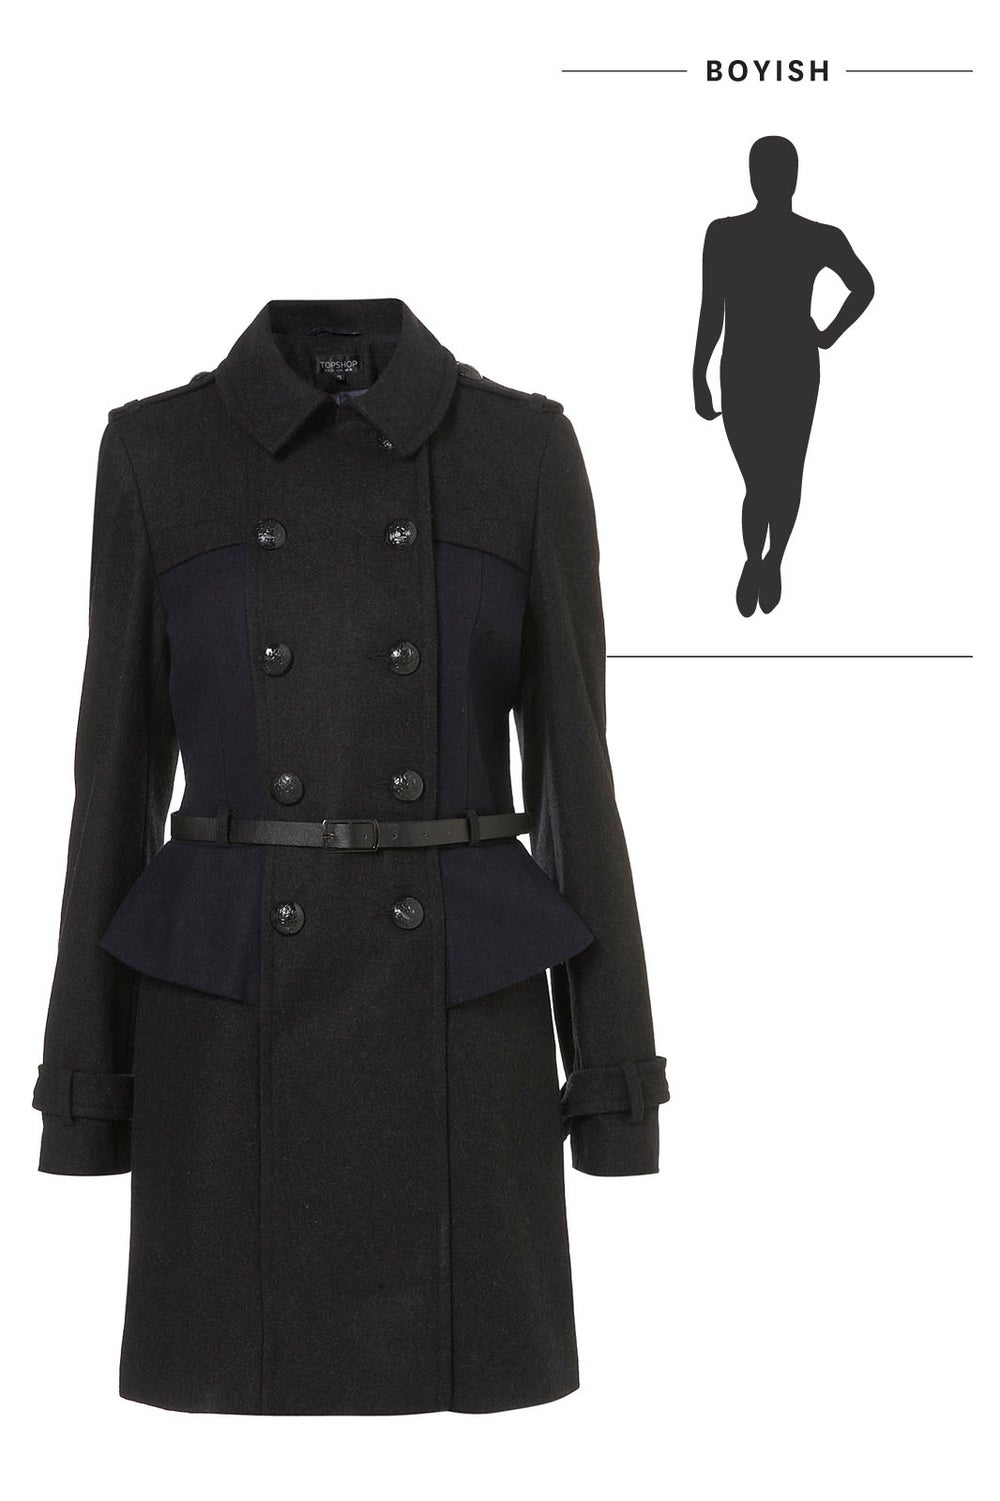 The Perfect Coats To Flatter EVERY Body